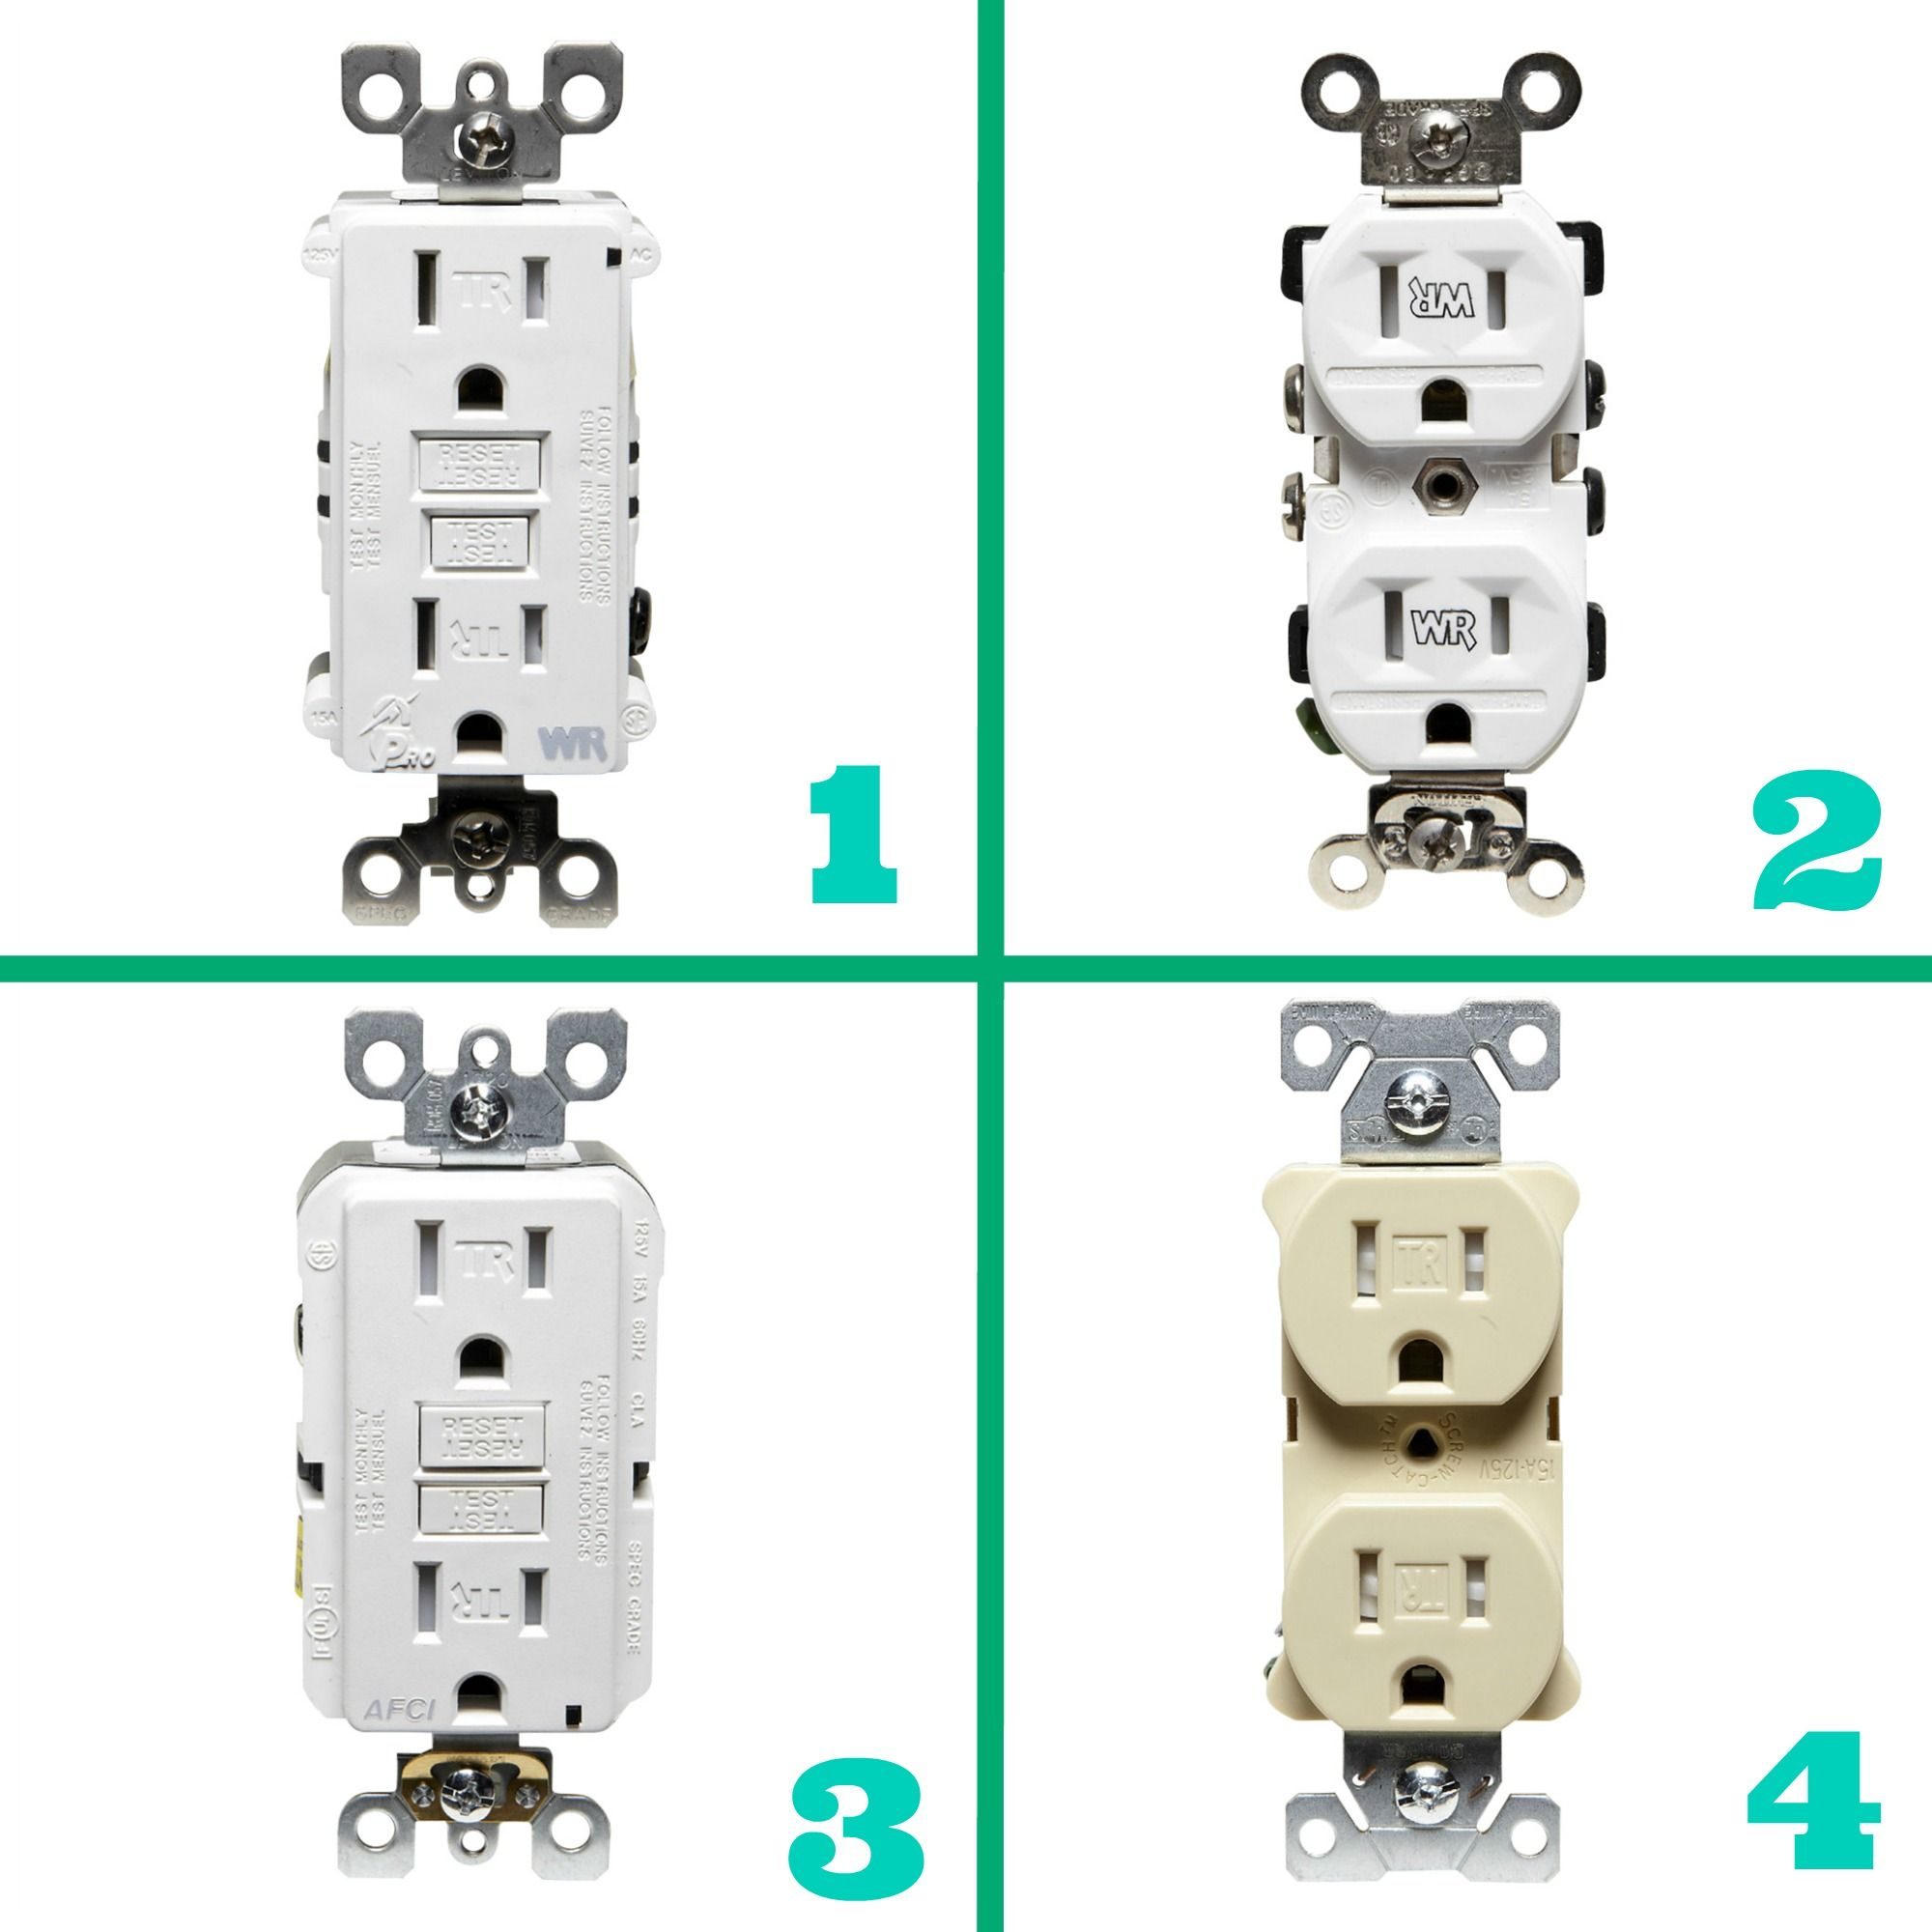 medium resolution of 27 must know tips for wiring switches and outlets yourself